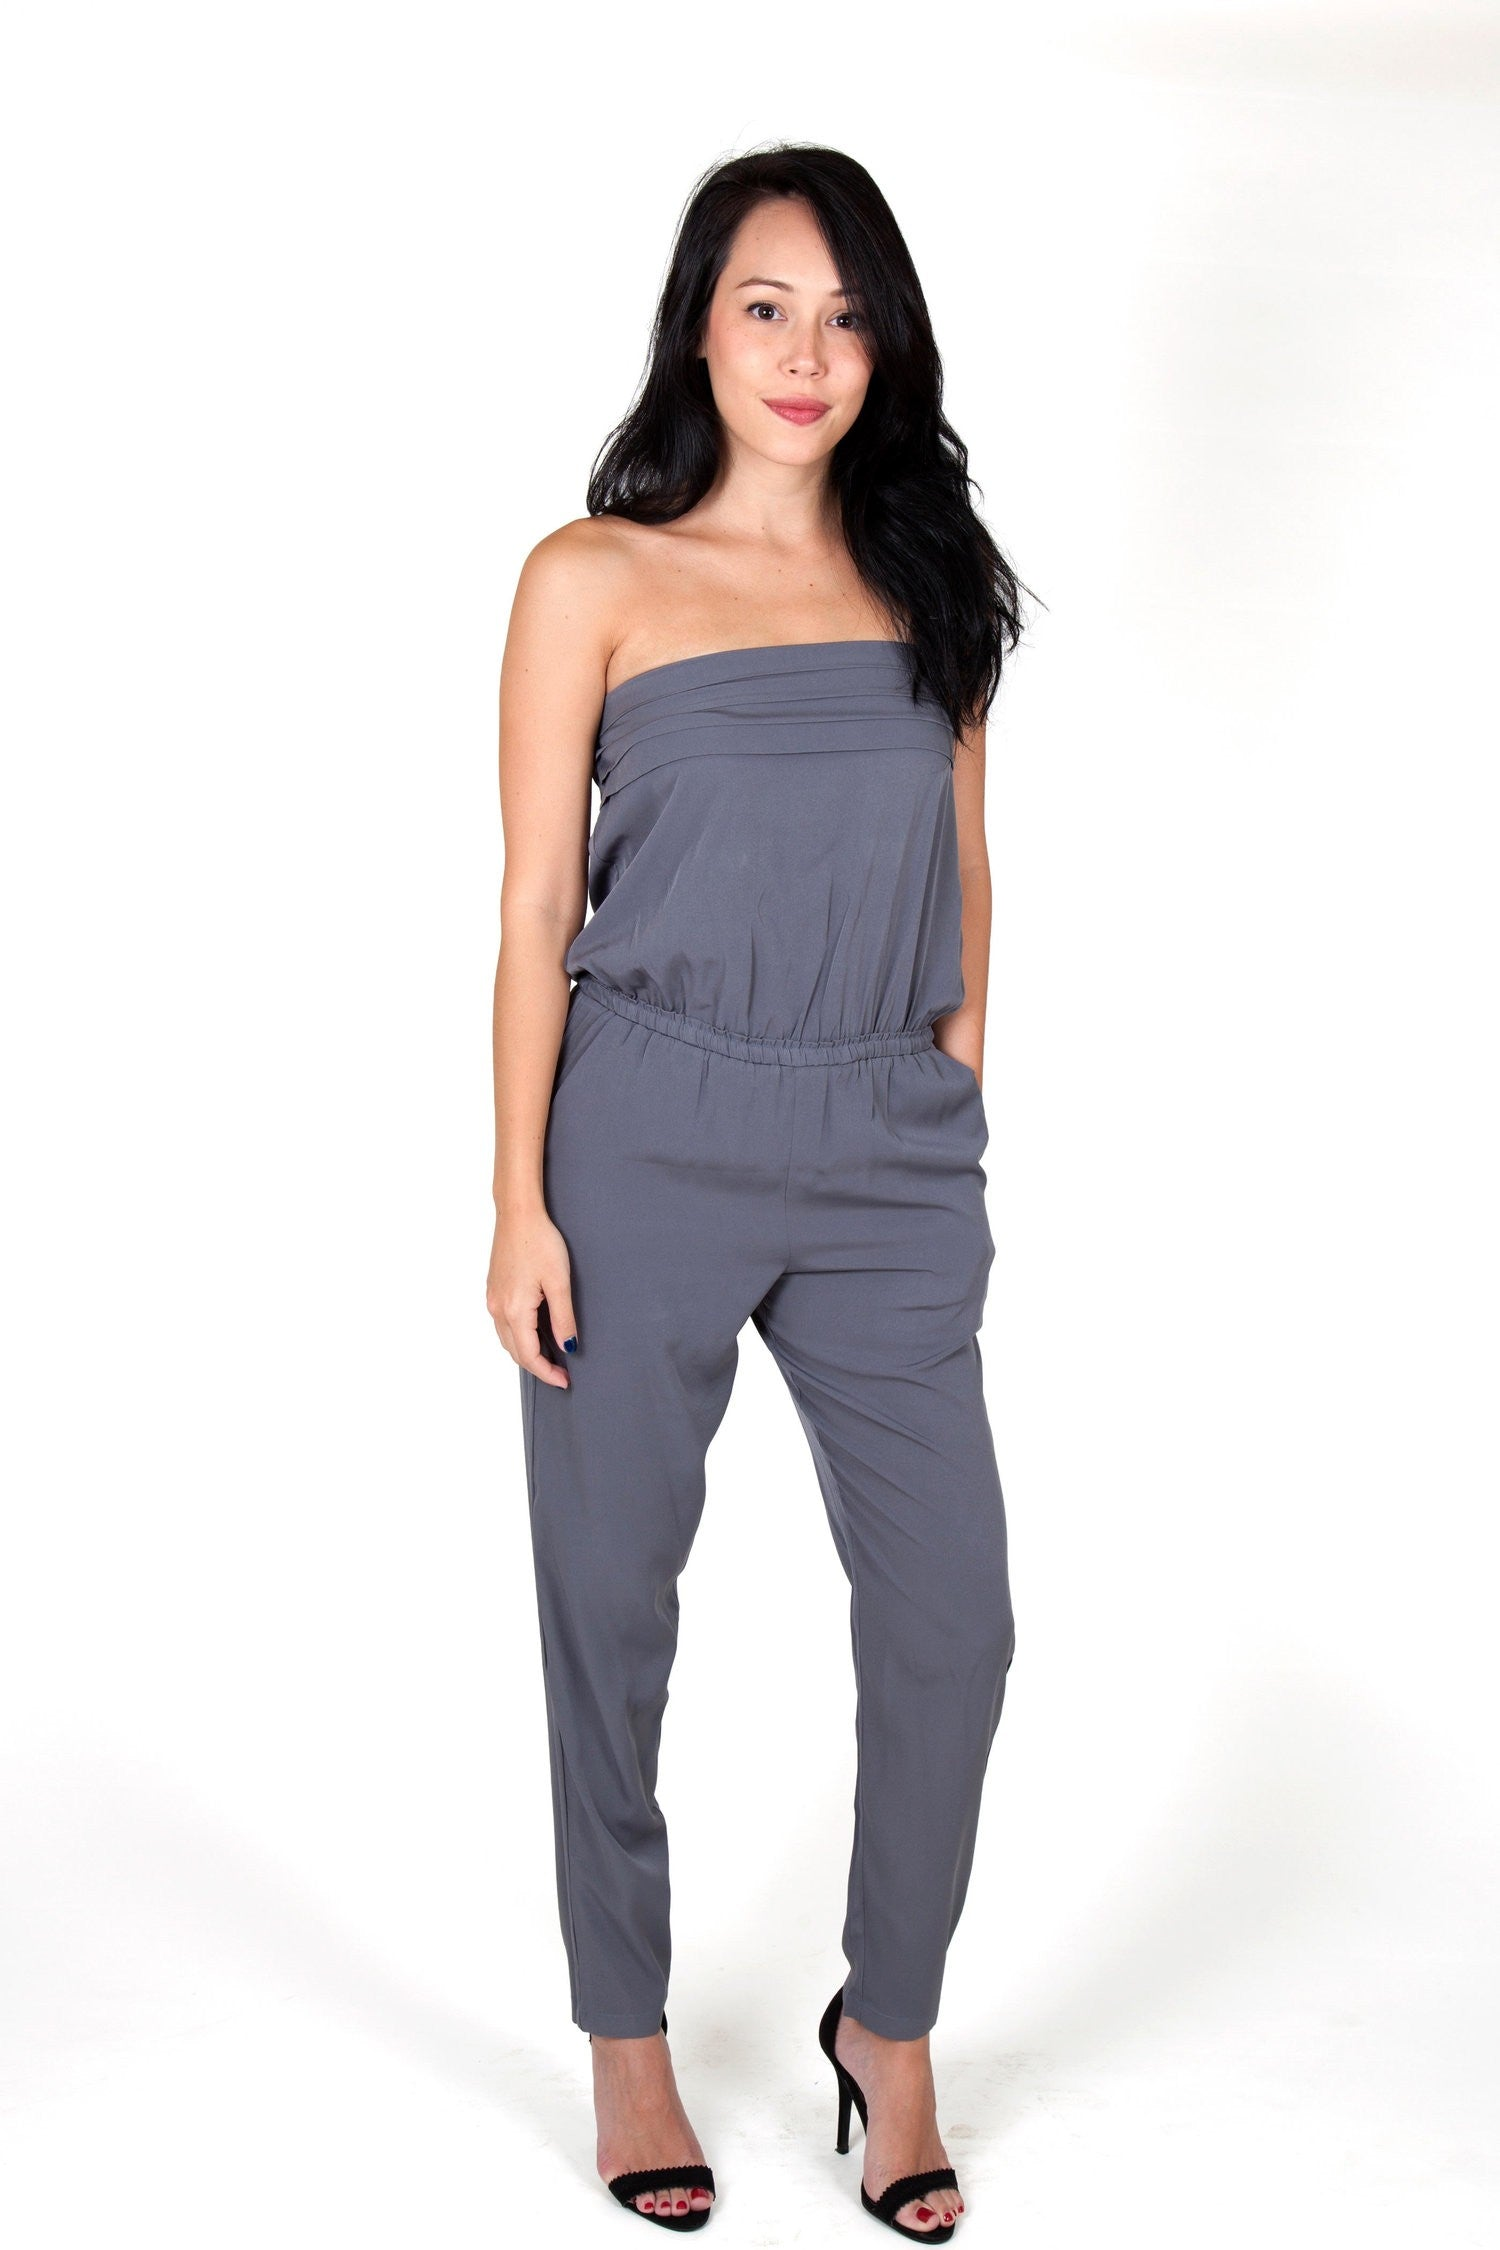 1419b70db8 Julie Grey Jumpsuit Capsule Collection By Juliette - S - Jumpsuits Capsule  Collection By Juliette